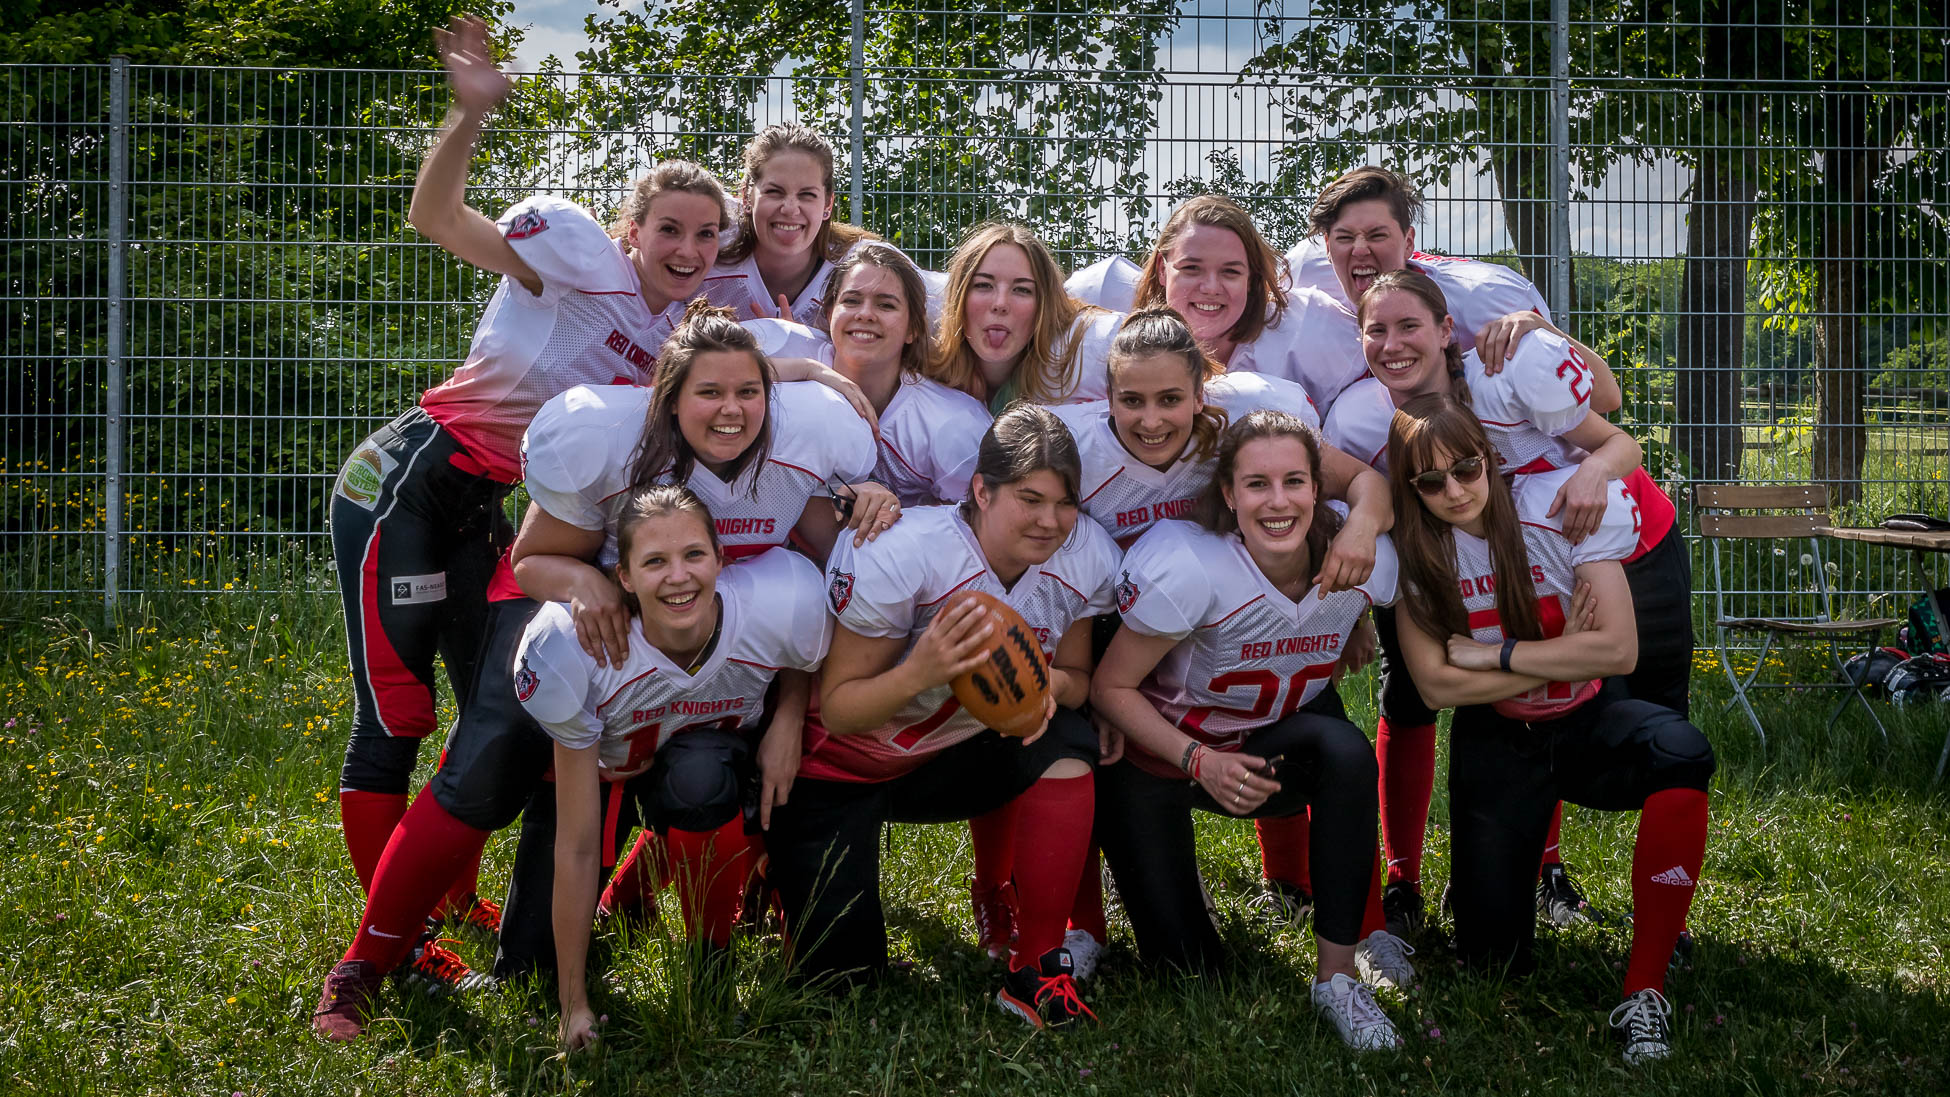 Red Knights Ladies - American Football Team Mannschaft 2018